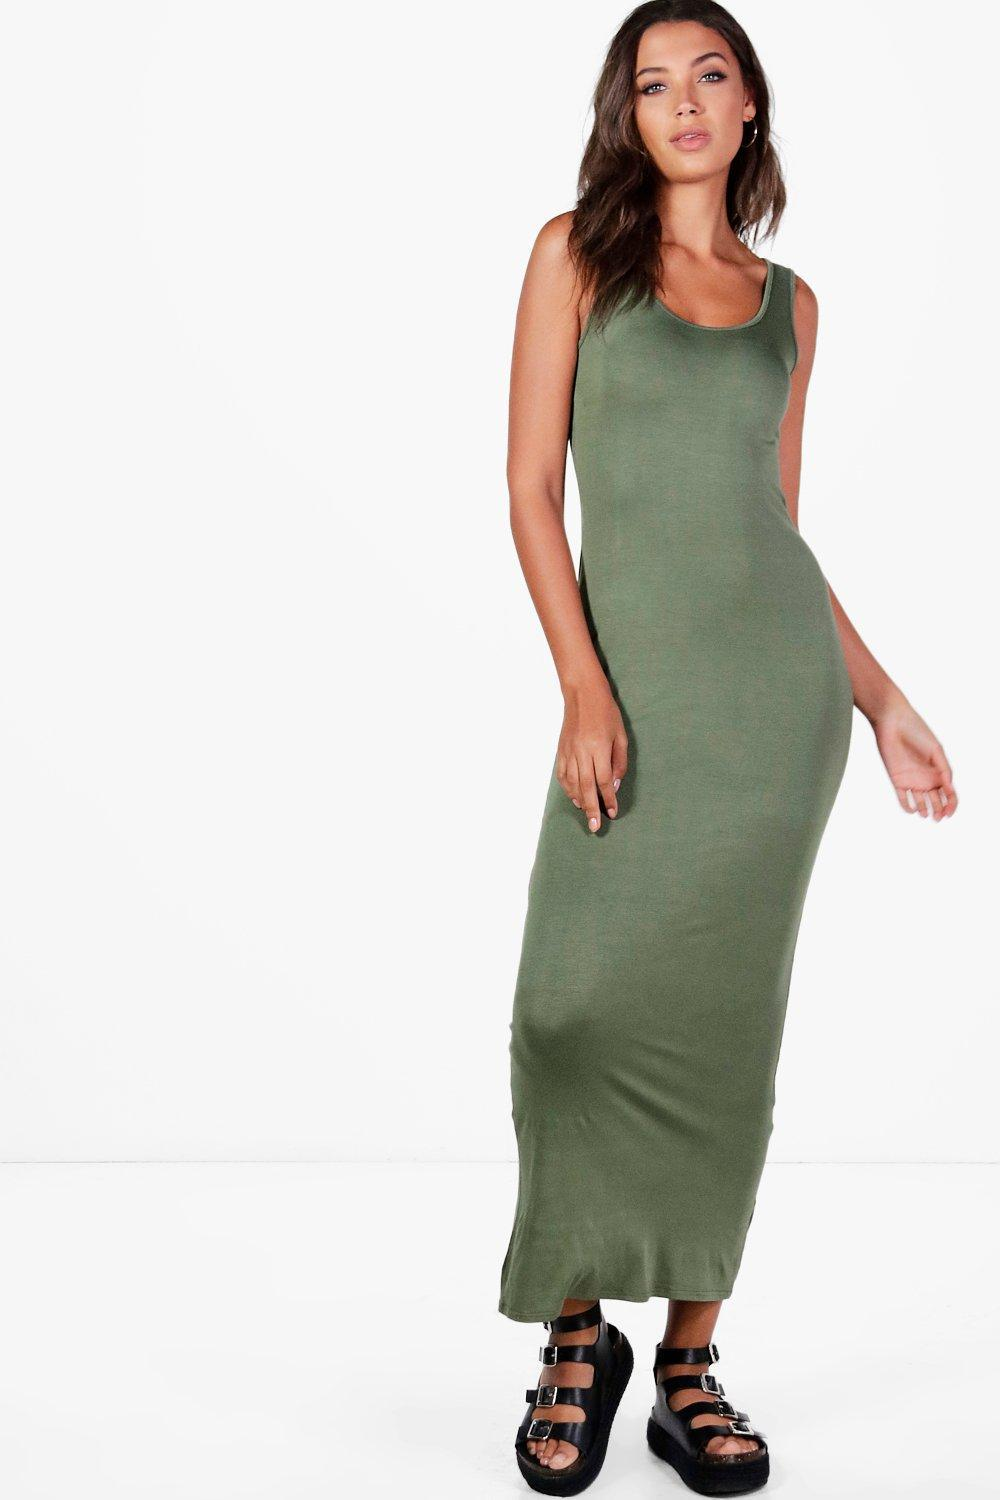 Boohoo Tall Basic Maxi Dress Outlet Sneakernews Best Place To Buy Buy Cheap New Arrival Outlet Best Store To Get s9oEi